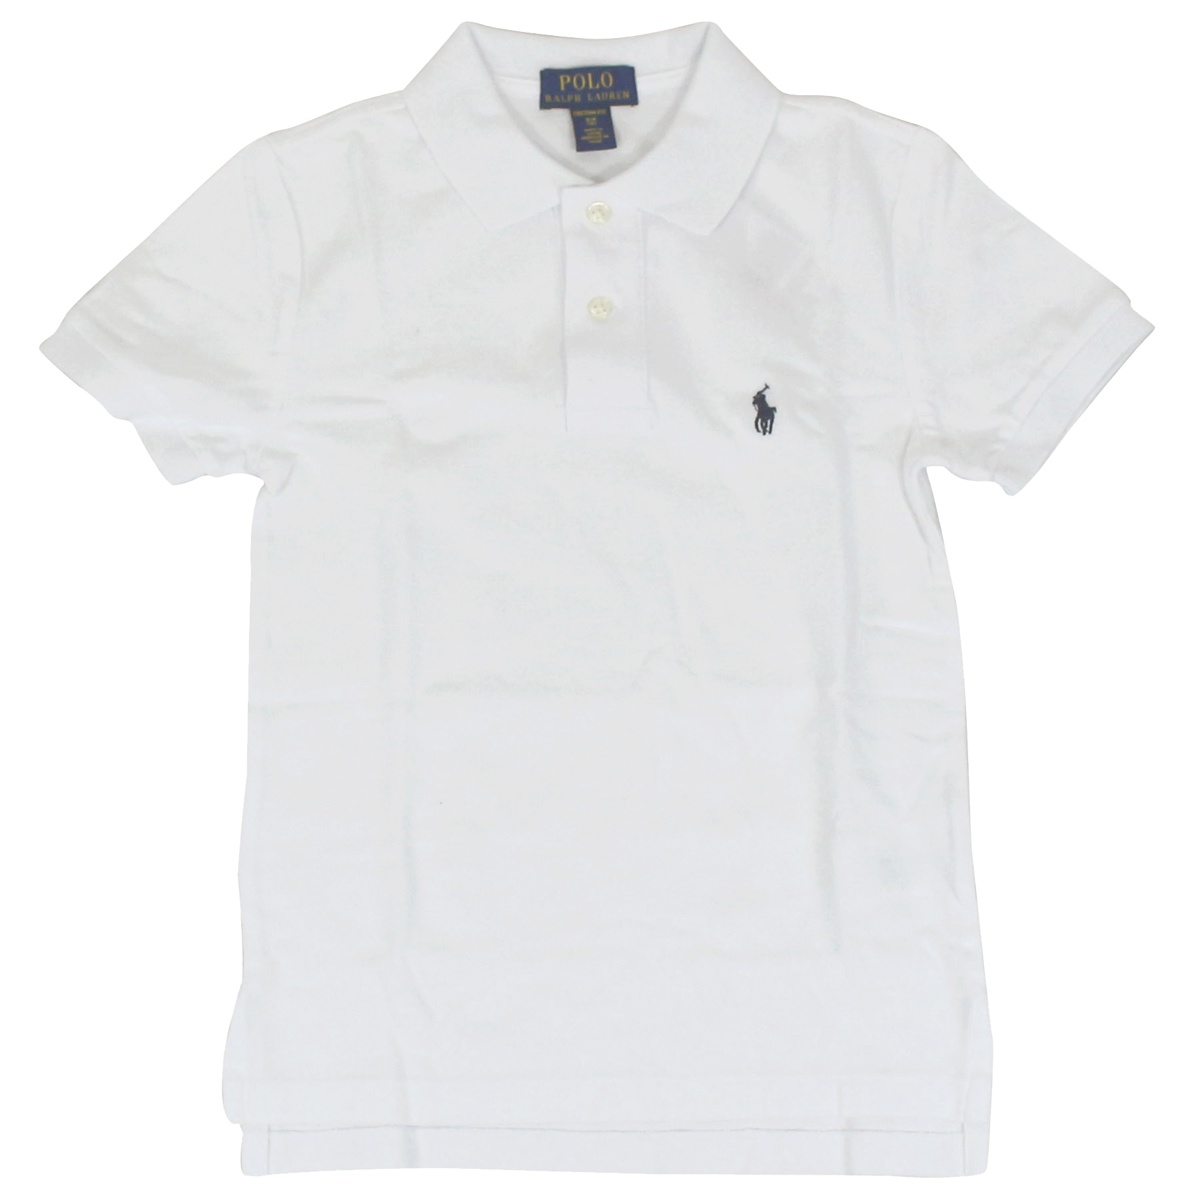 2 button cotton polo shirt White Polo Ralph Lauren